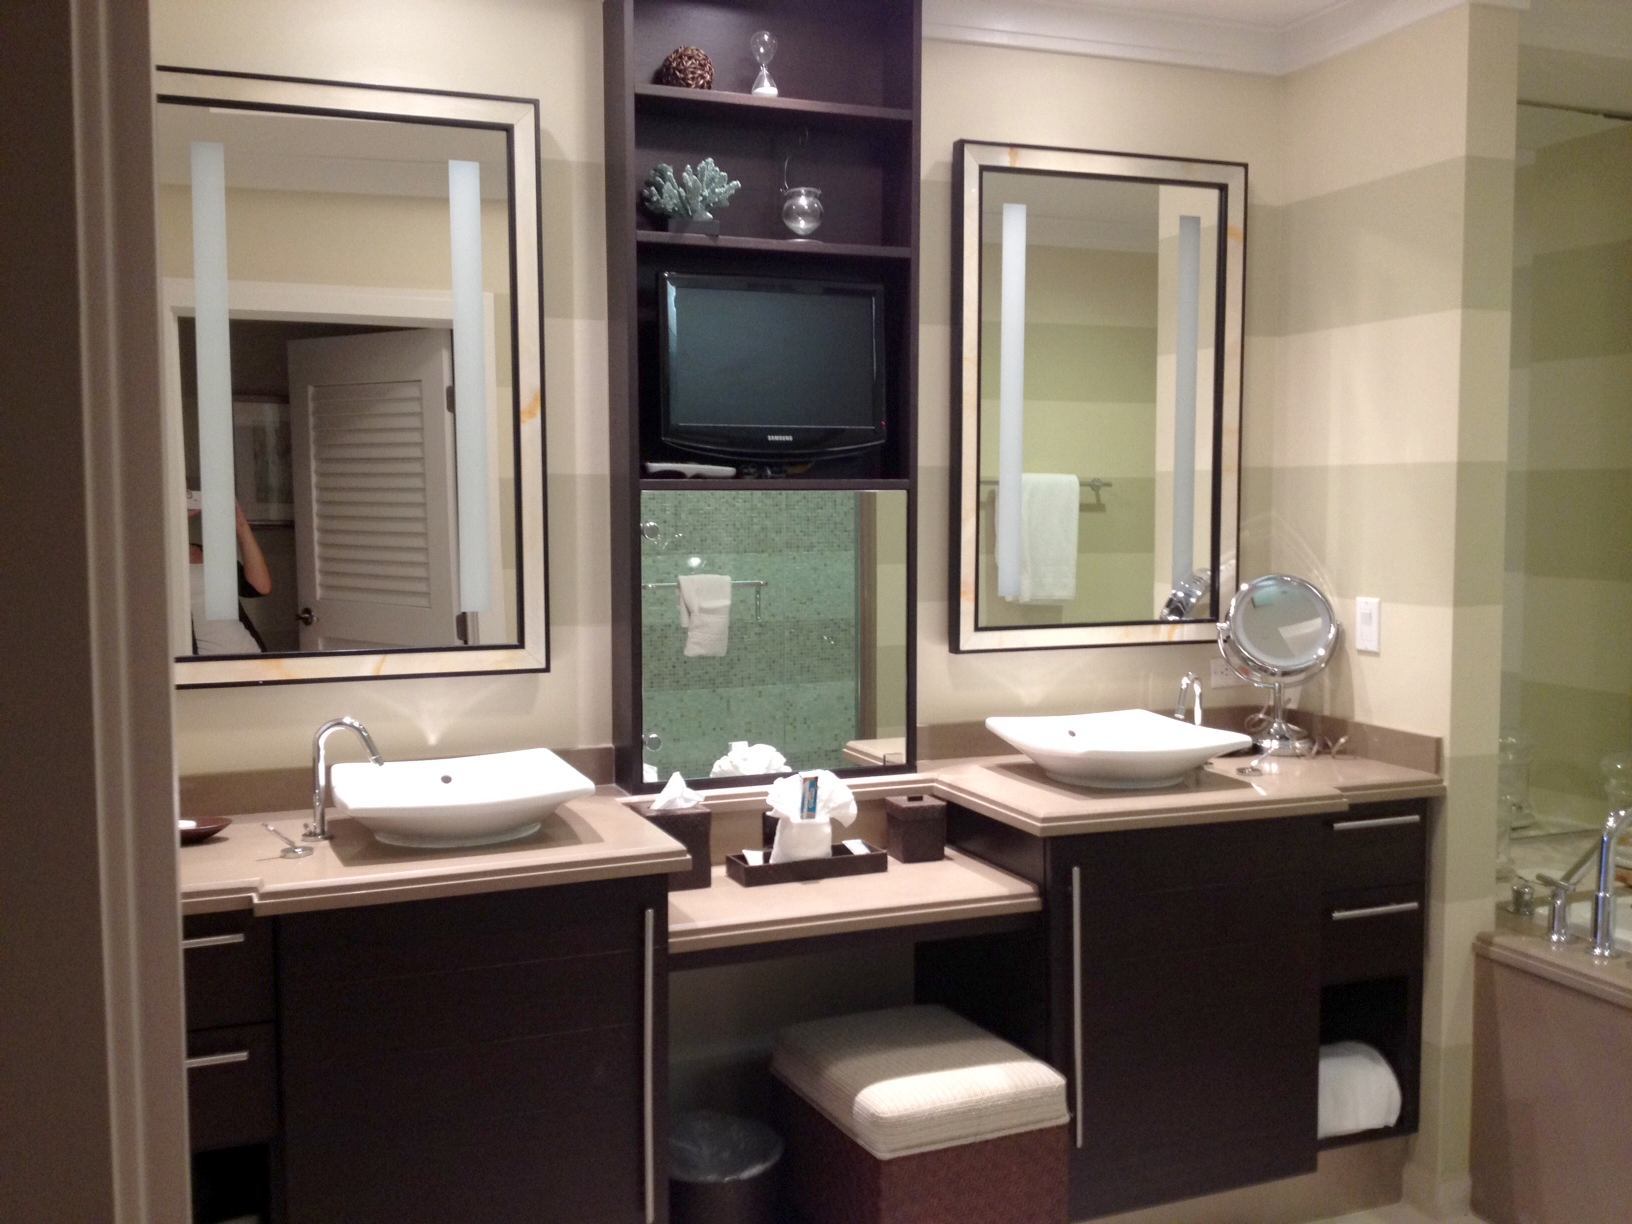 Epic Bathroom Vanity Mirrors Design : Ideas For Choose Bathroom Vanity intended for Bathroom Vanity Mirrors